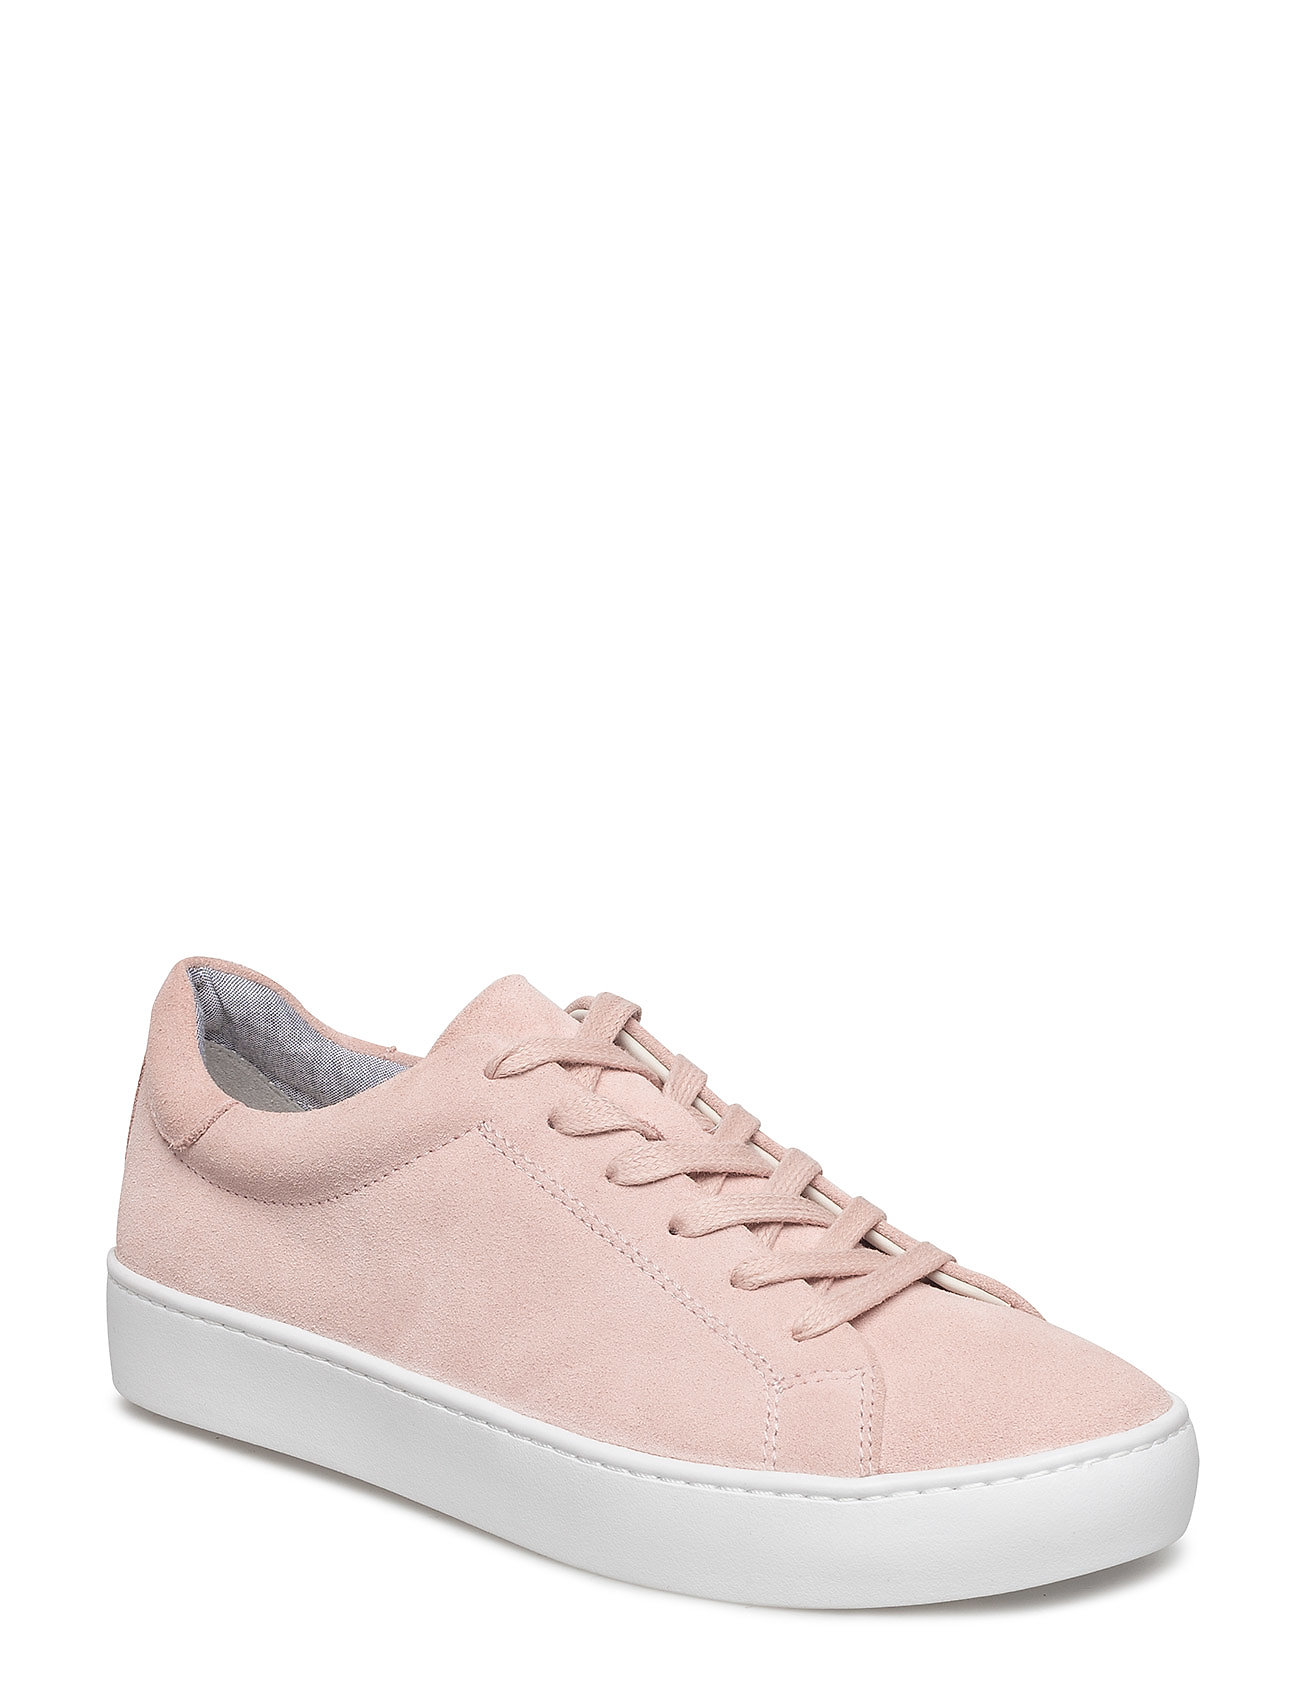 Image of Zoe Low-top Sneakers Lyserød VAGABOND (3455945131)